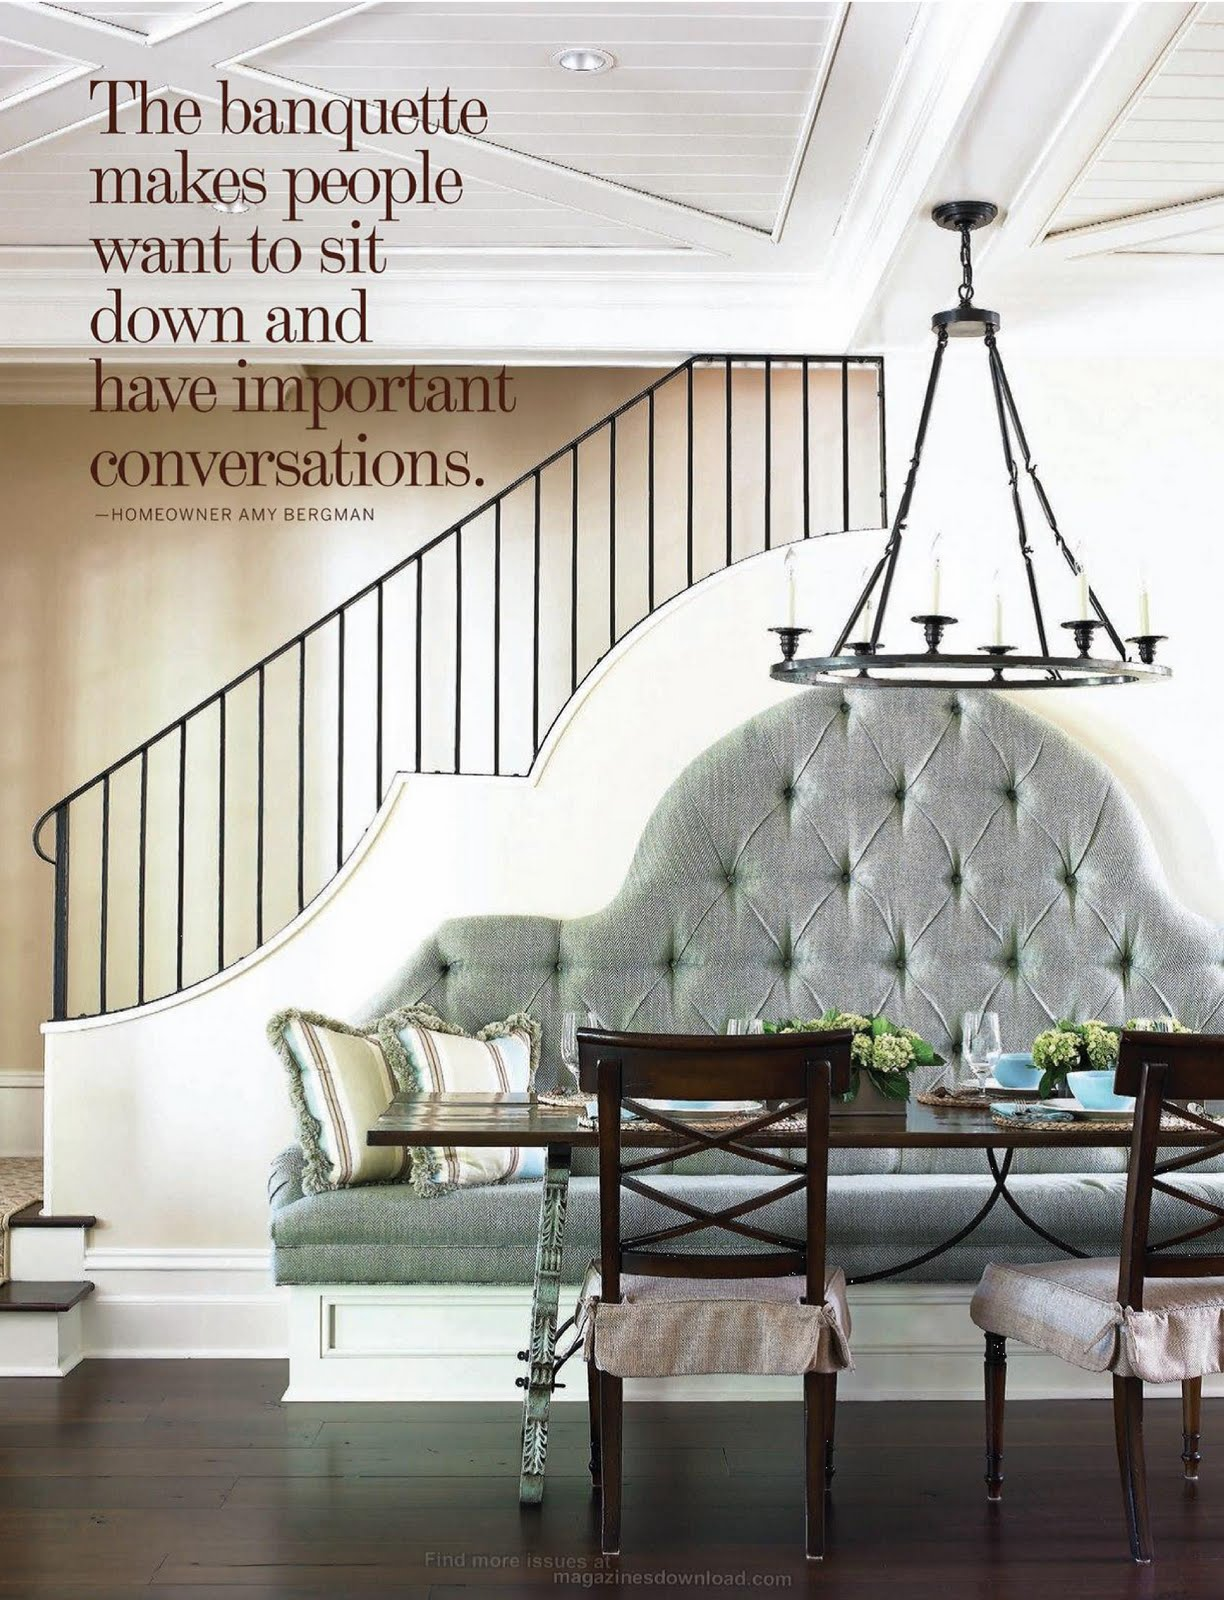 How to pick a table for a banquette joy studio design gallery best design - Kitchen banquette seating ...